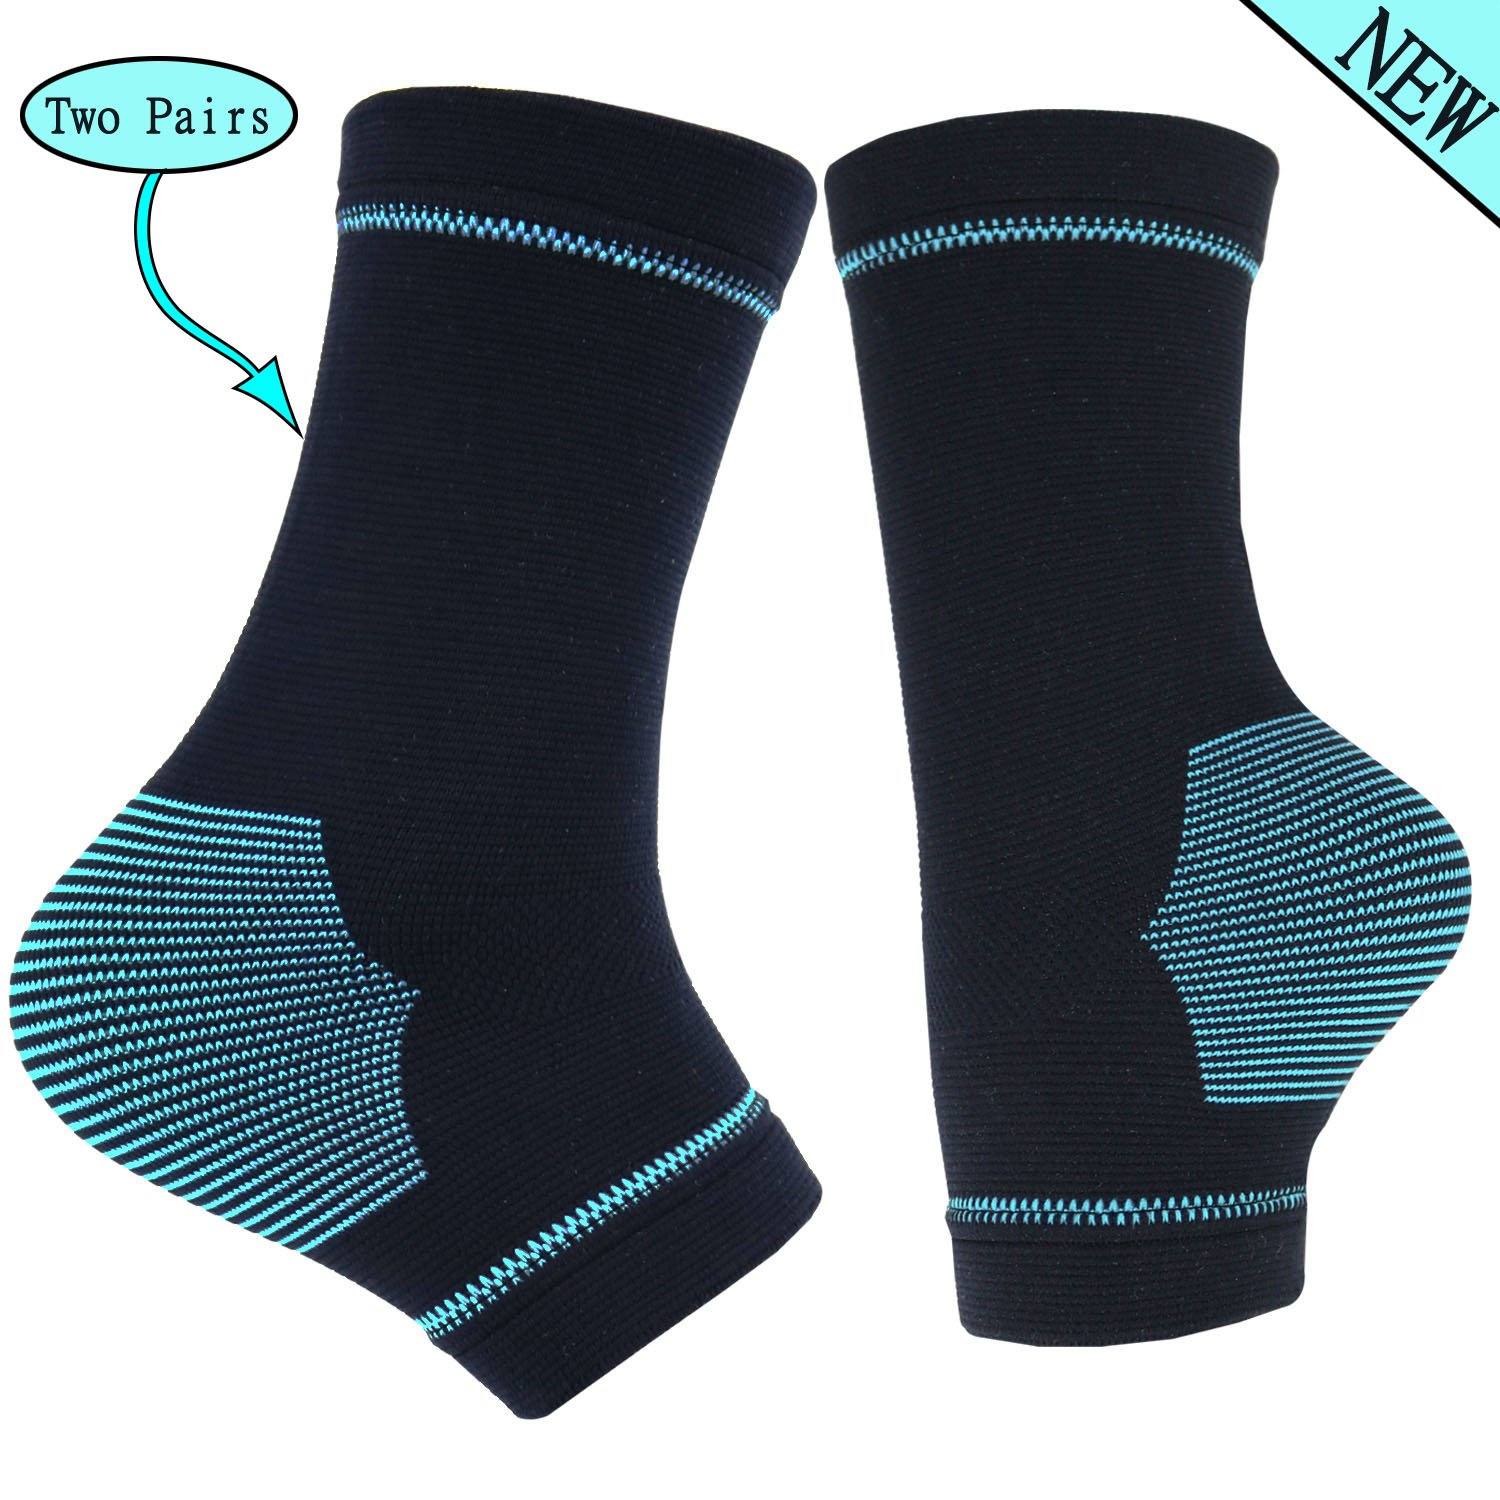 TongXG Plantar Fasciitis Compression sleeves for Ankle/Heel Support, Increase Blood Circulation, Relieve Arch Pain, Reduce Foot Swelling & Heel Spur Pain. (Black & Black 2 Pairs, S)